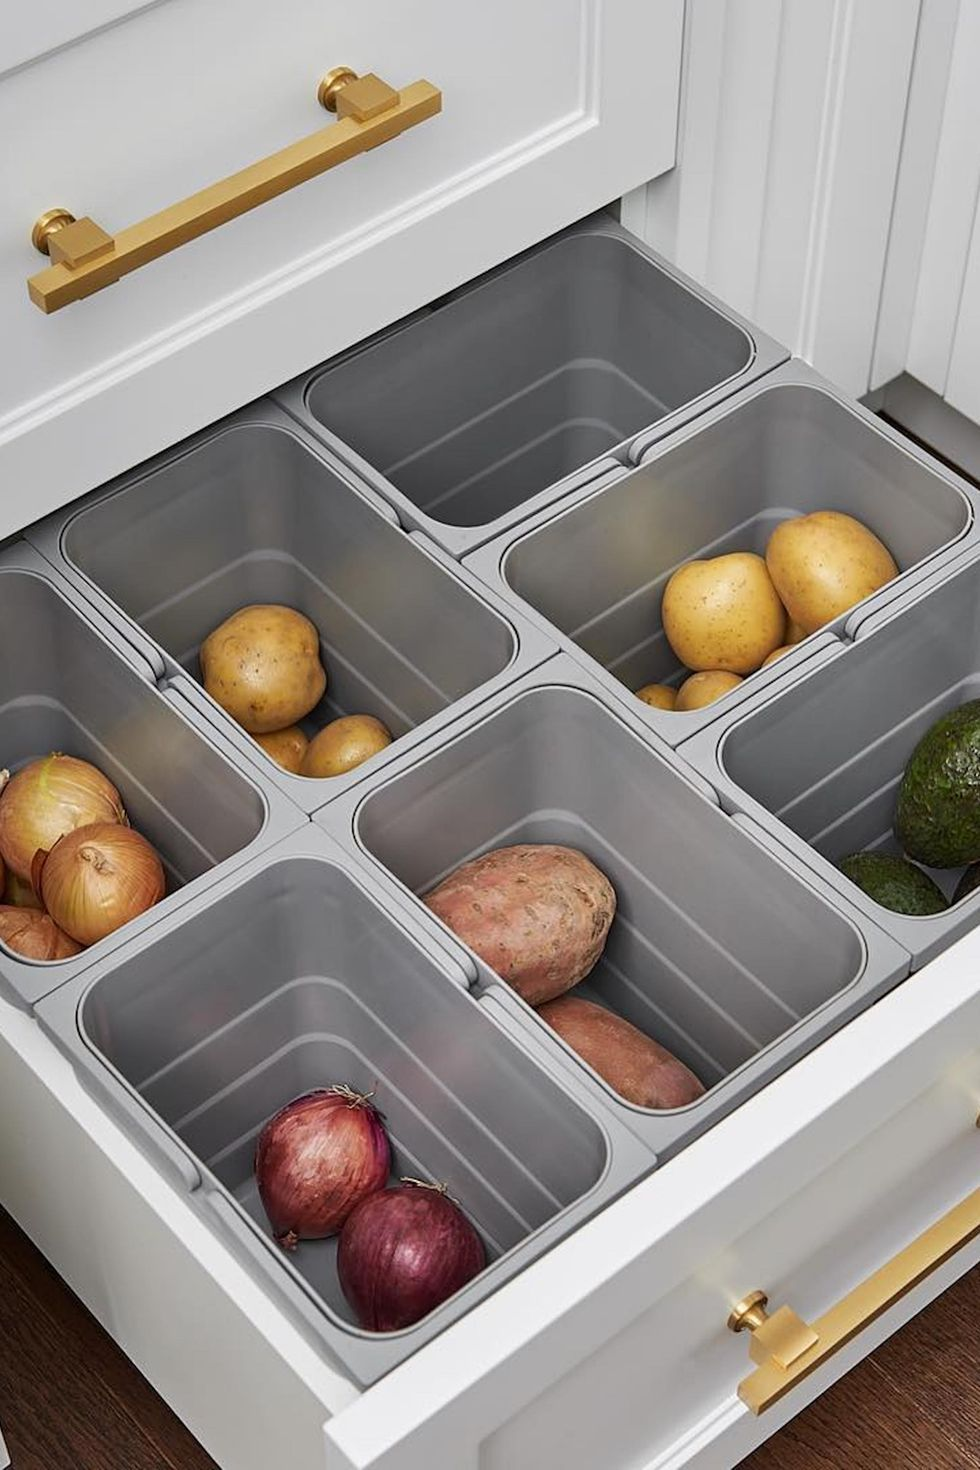 8 Kitchen Organization Ideas - Kitchen Organizing Tips and Tricks